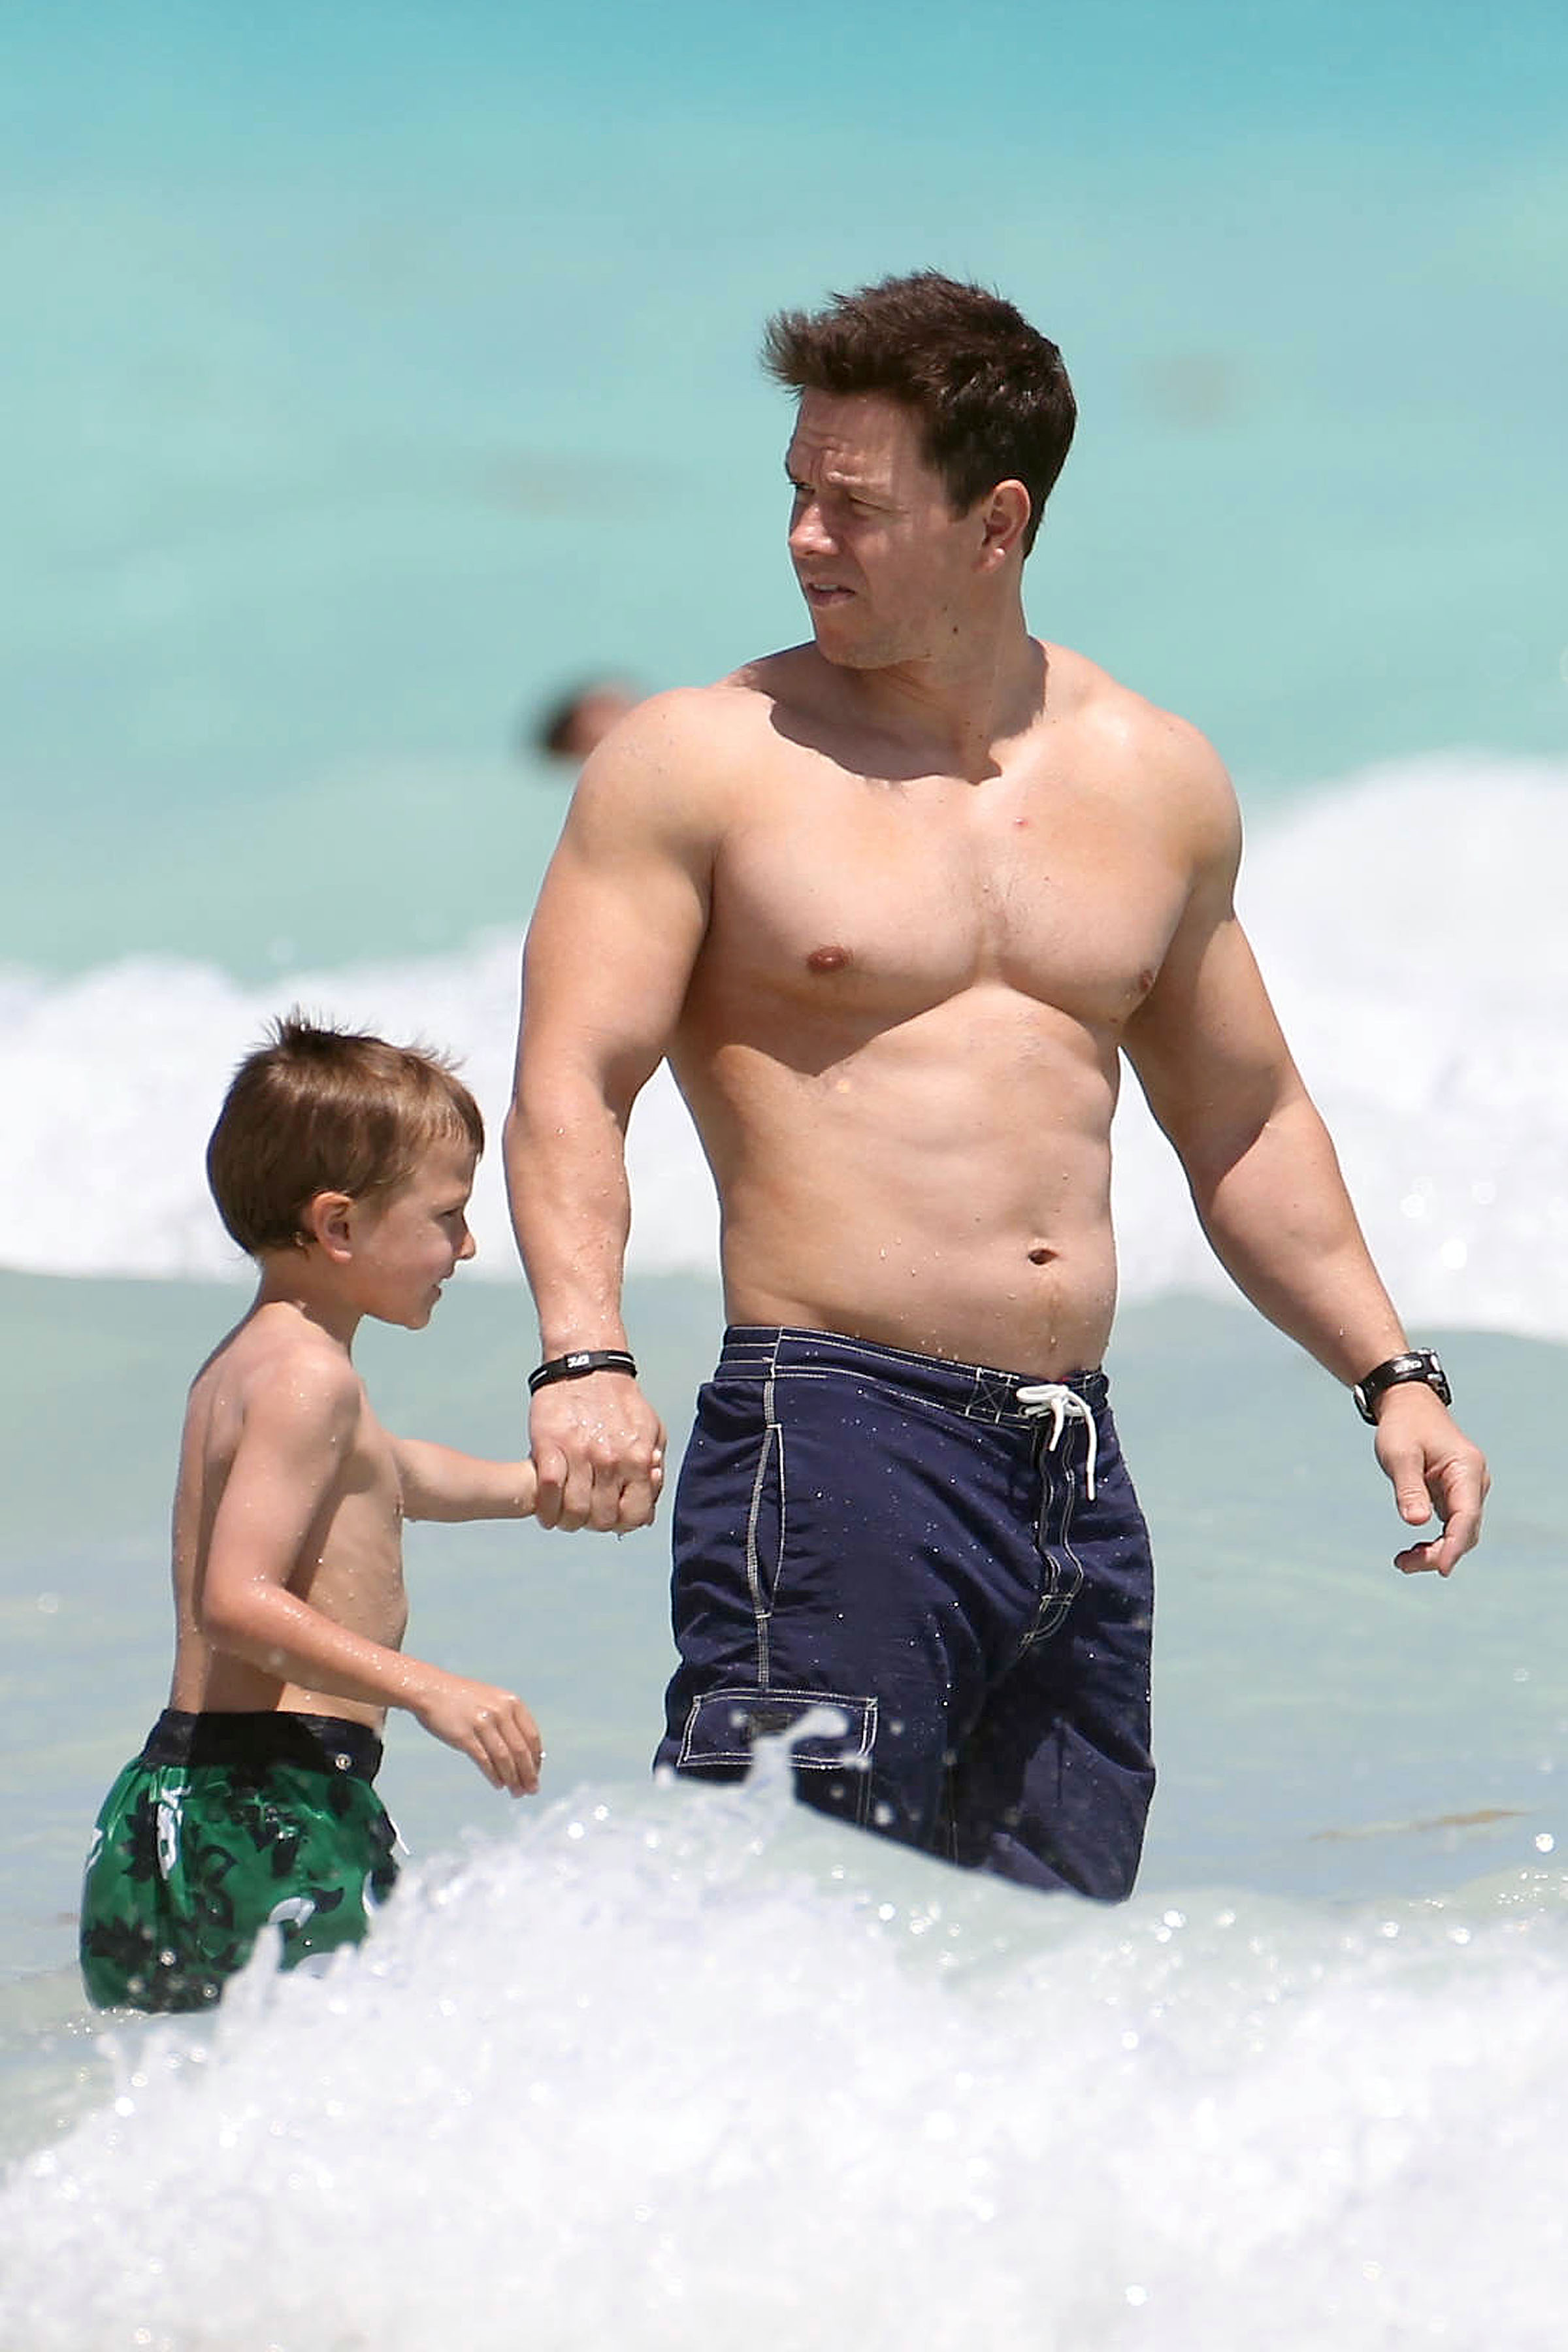 Bam Mark Wahlberg With No Shirt - Leaked Men-3916